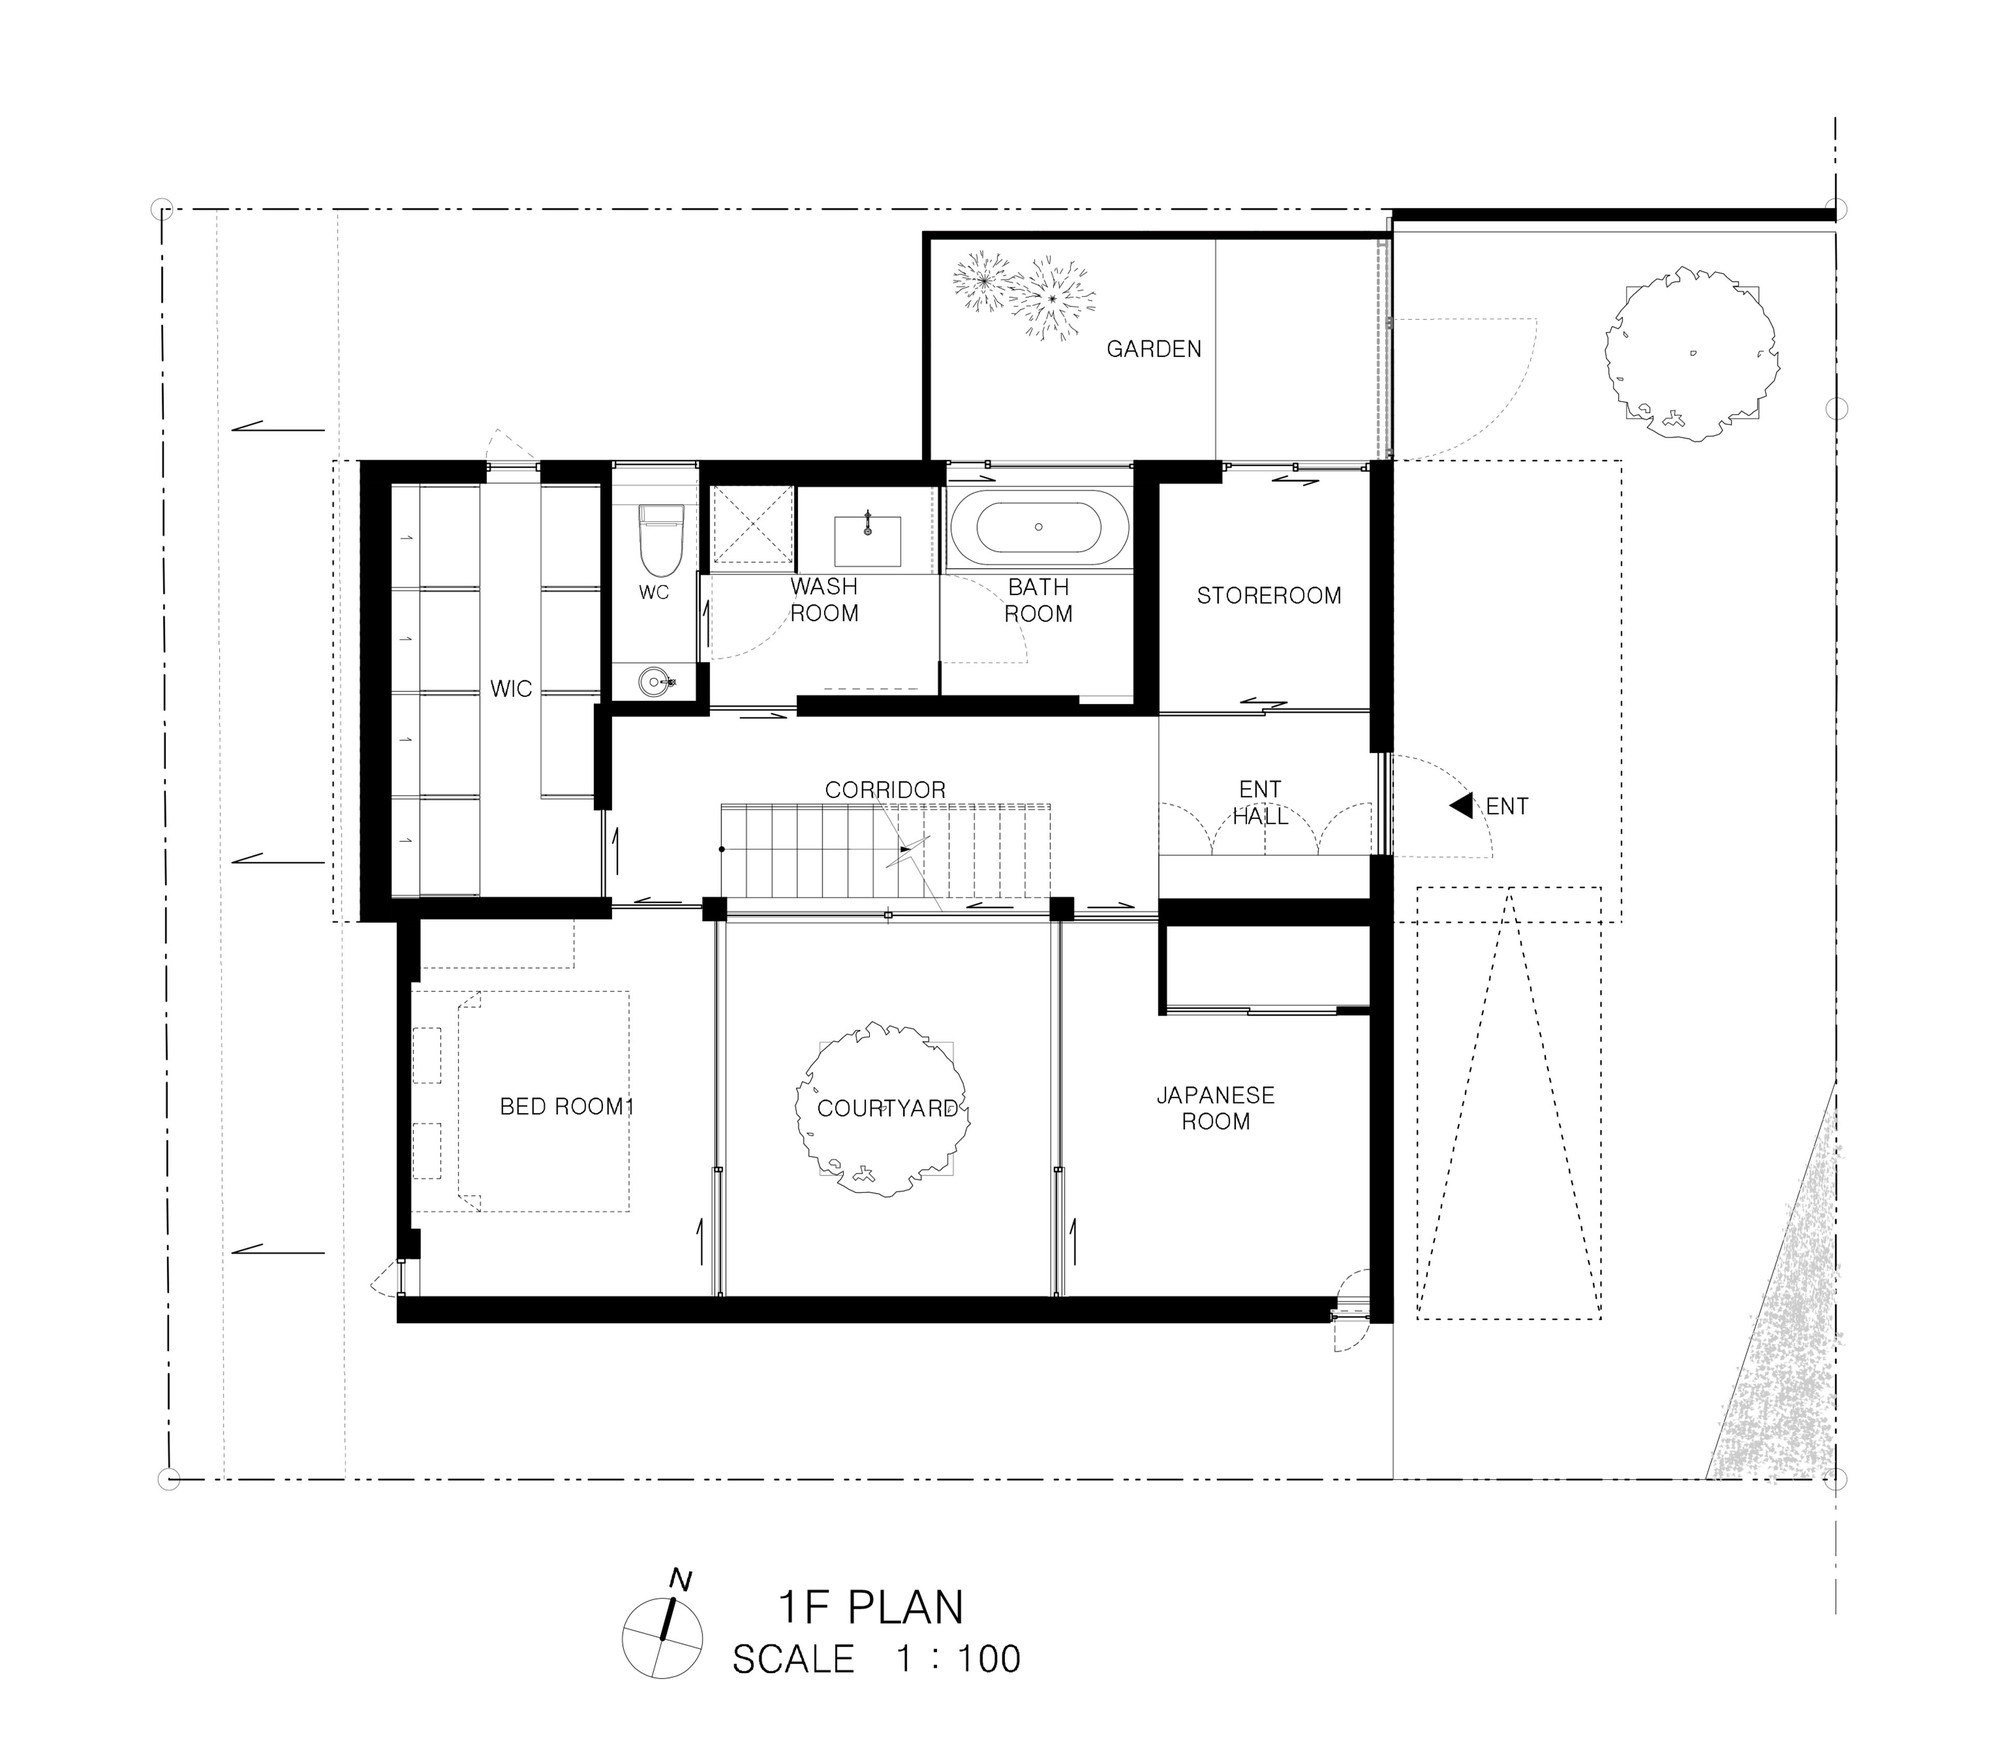 Patio House / APOLLO Architects U0026 Associates. Floor Plan